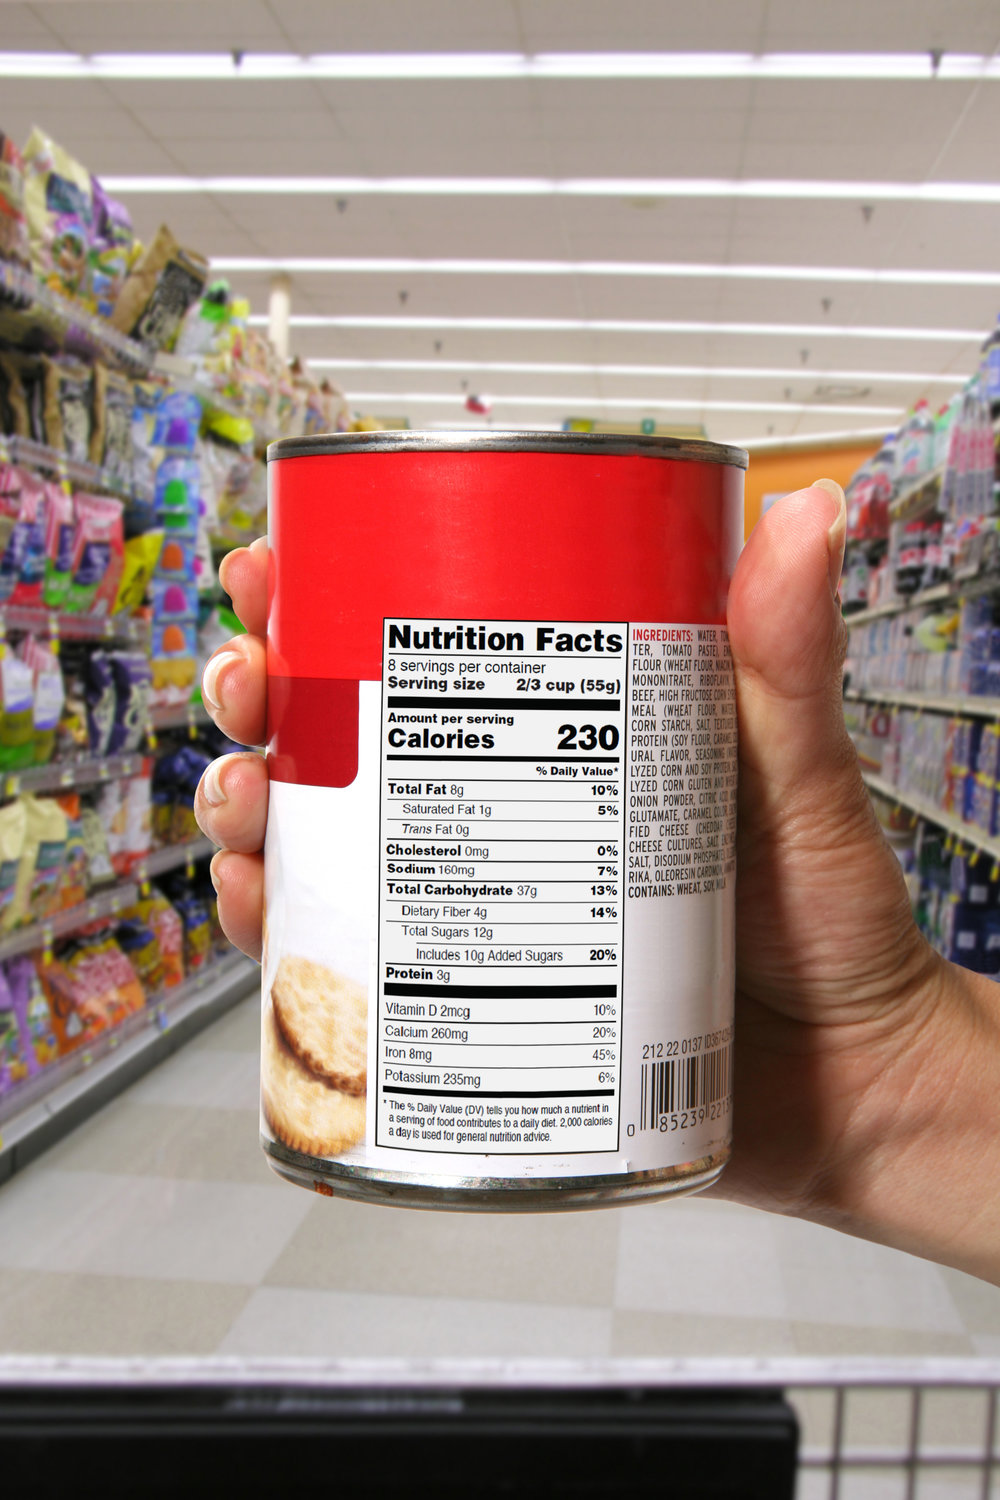 We will develop a formatted Nutrition Facts Panel that is ready for placement on the product.